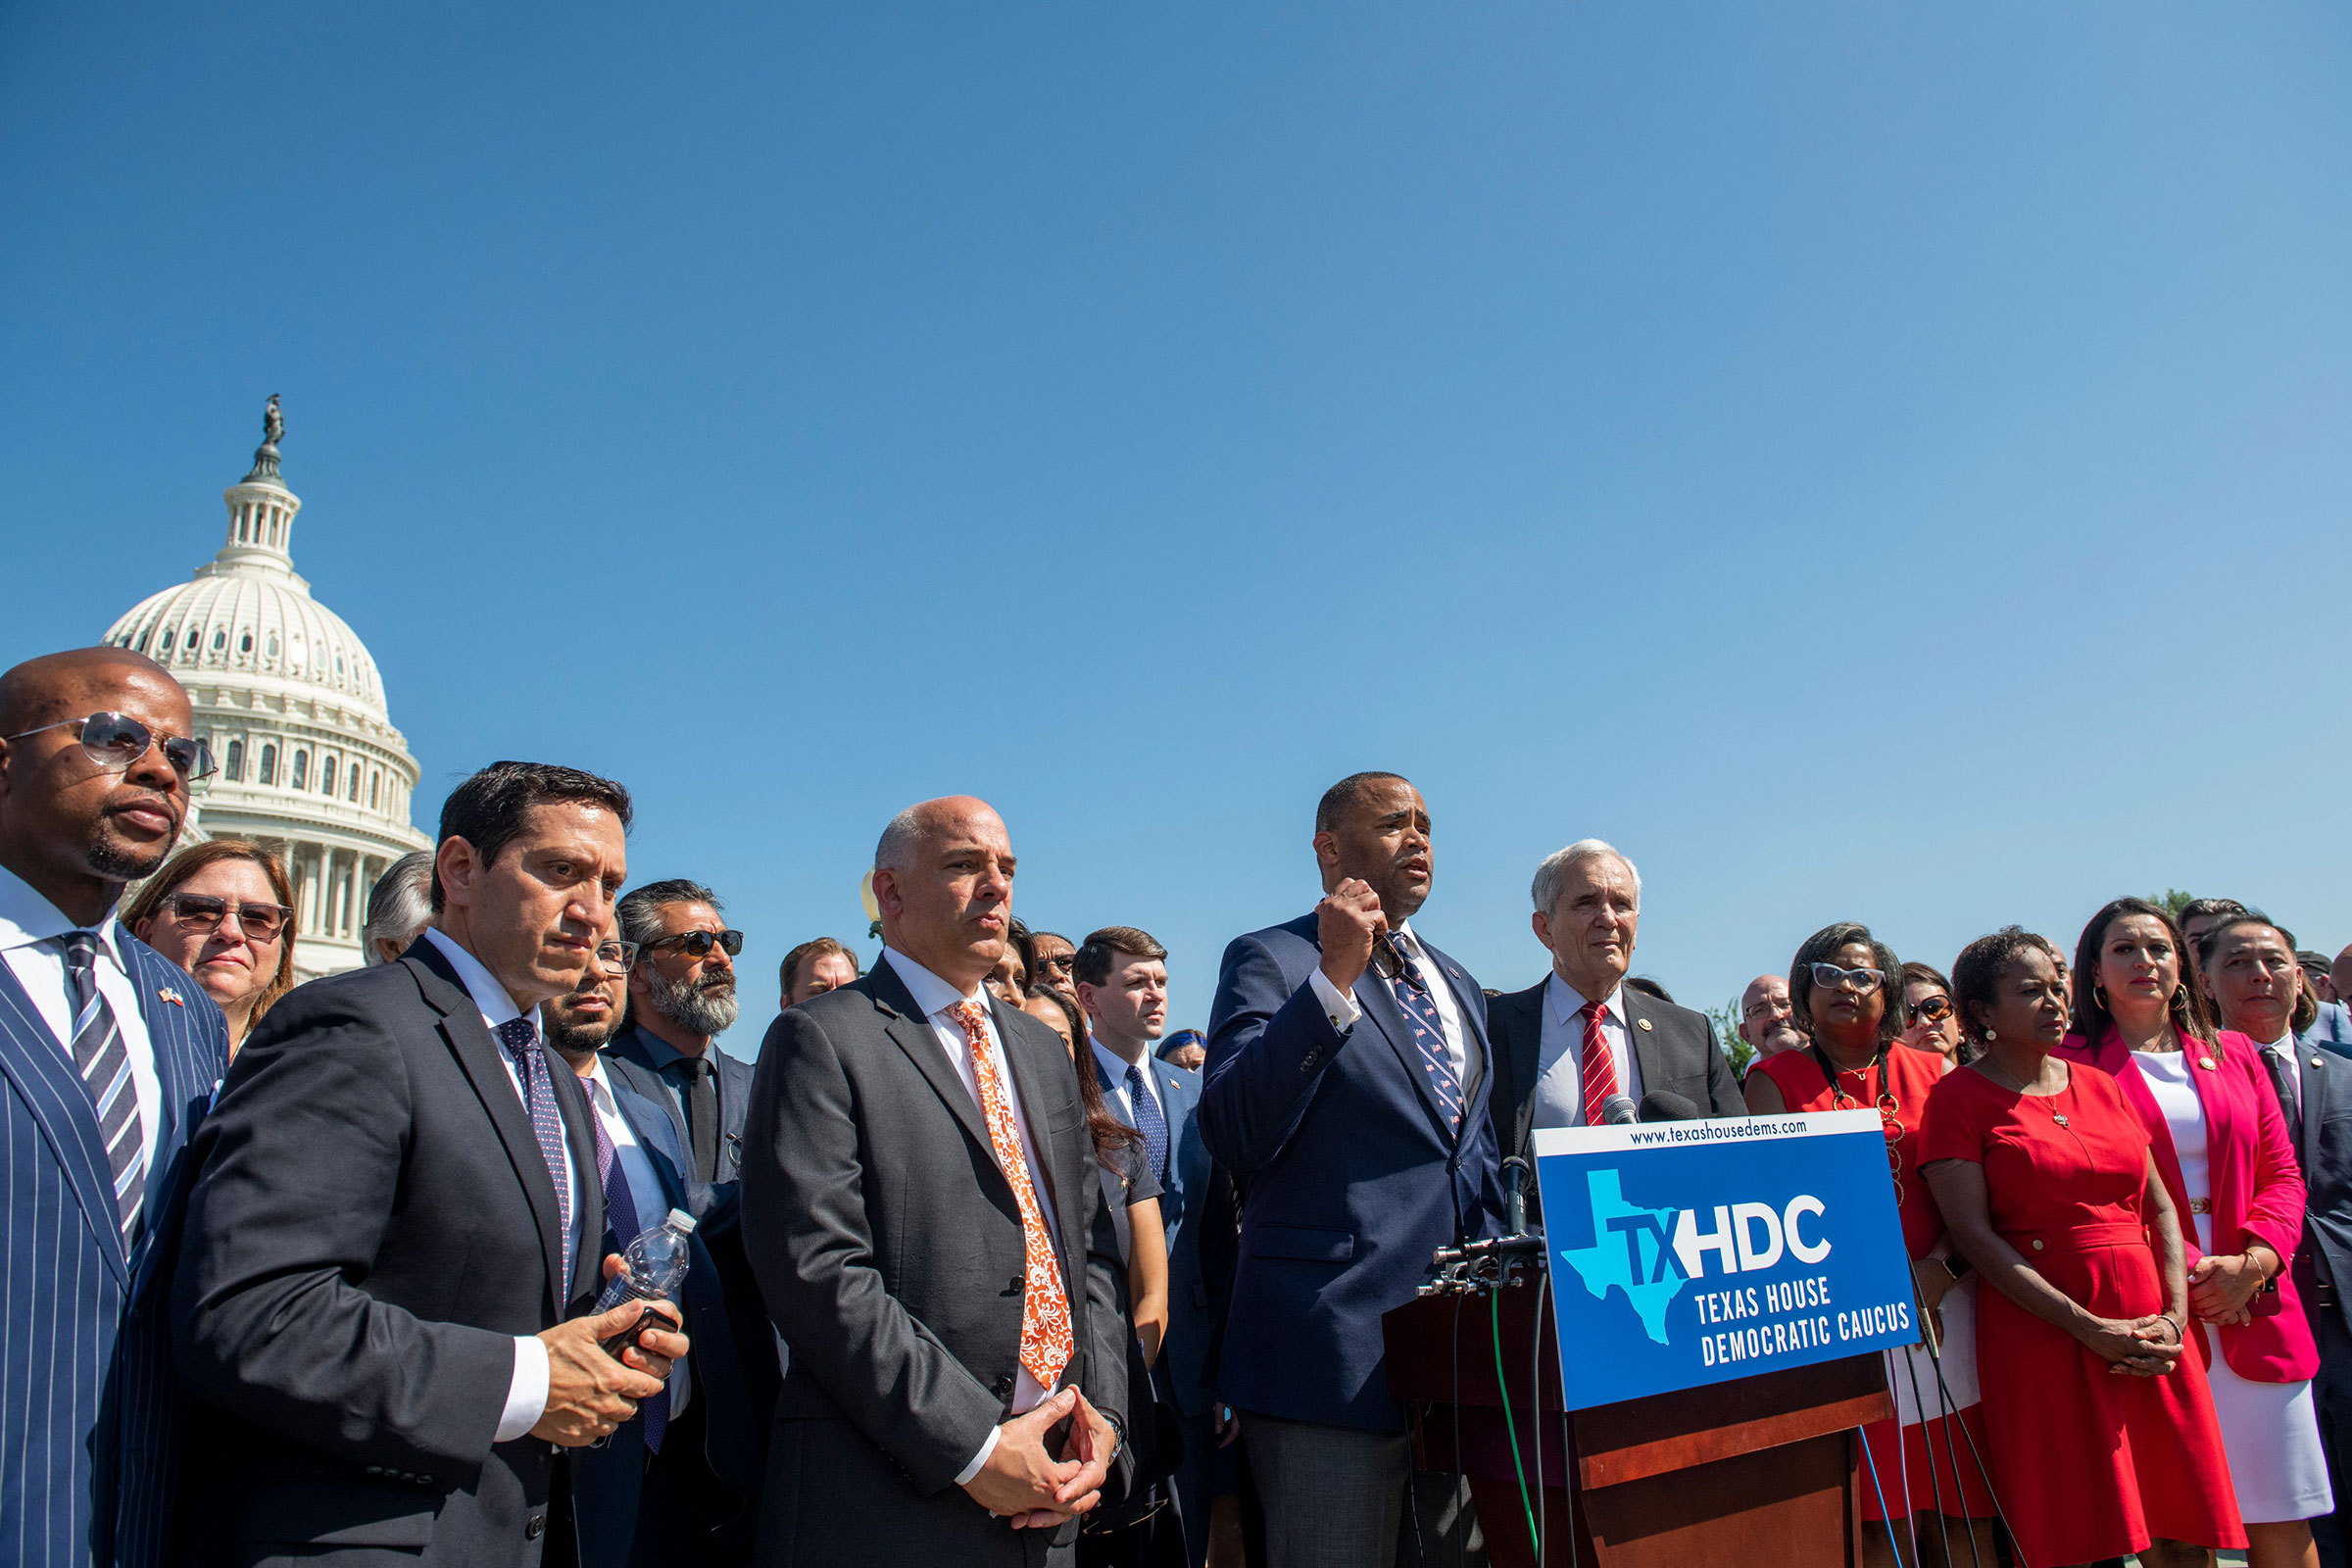 Congressmen Rep. Marc Veasey speaks alongside Texas state House Democrats during a news conference on voting rights outside the Capitol in Washington on July 13, 2021.